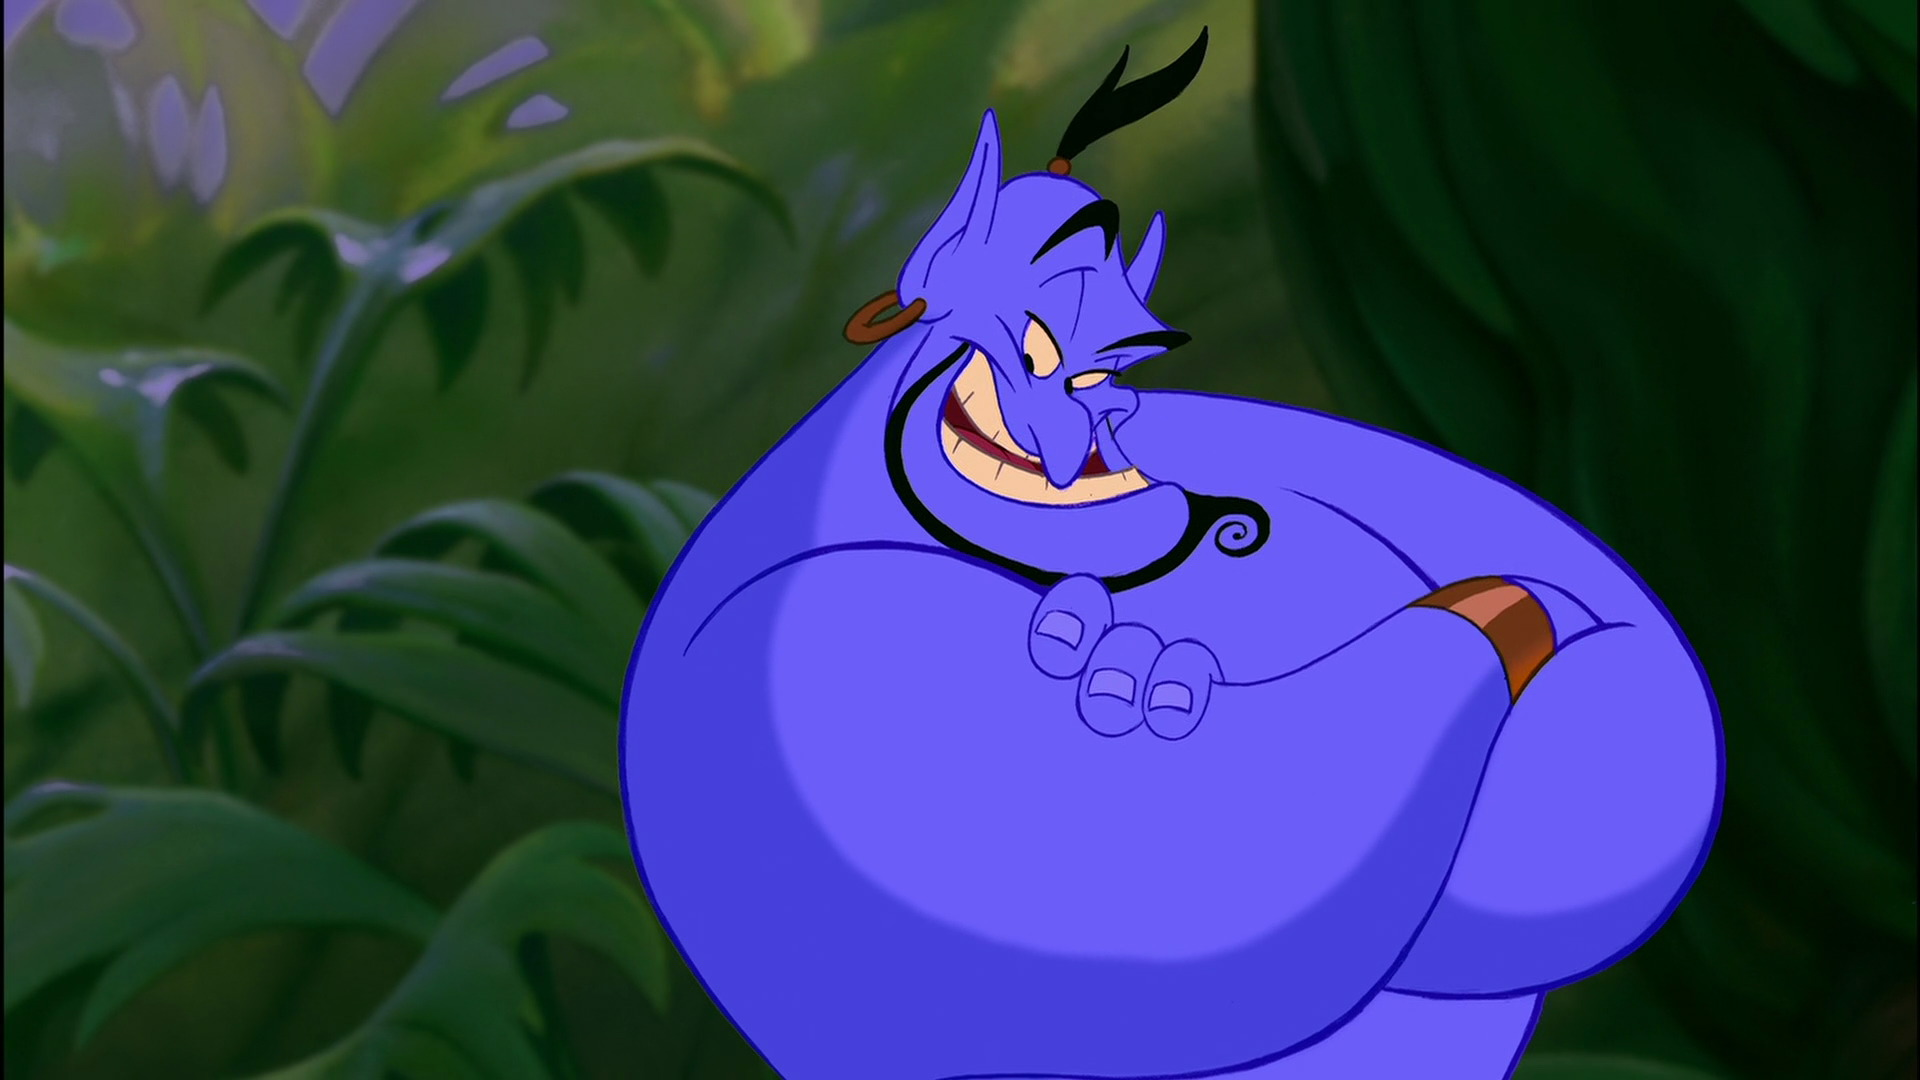 Genie | Disney Wiki | FANDOM powered by Wikia for Magic Lamp Aladdin Disney  110zmd